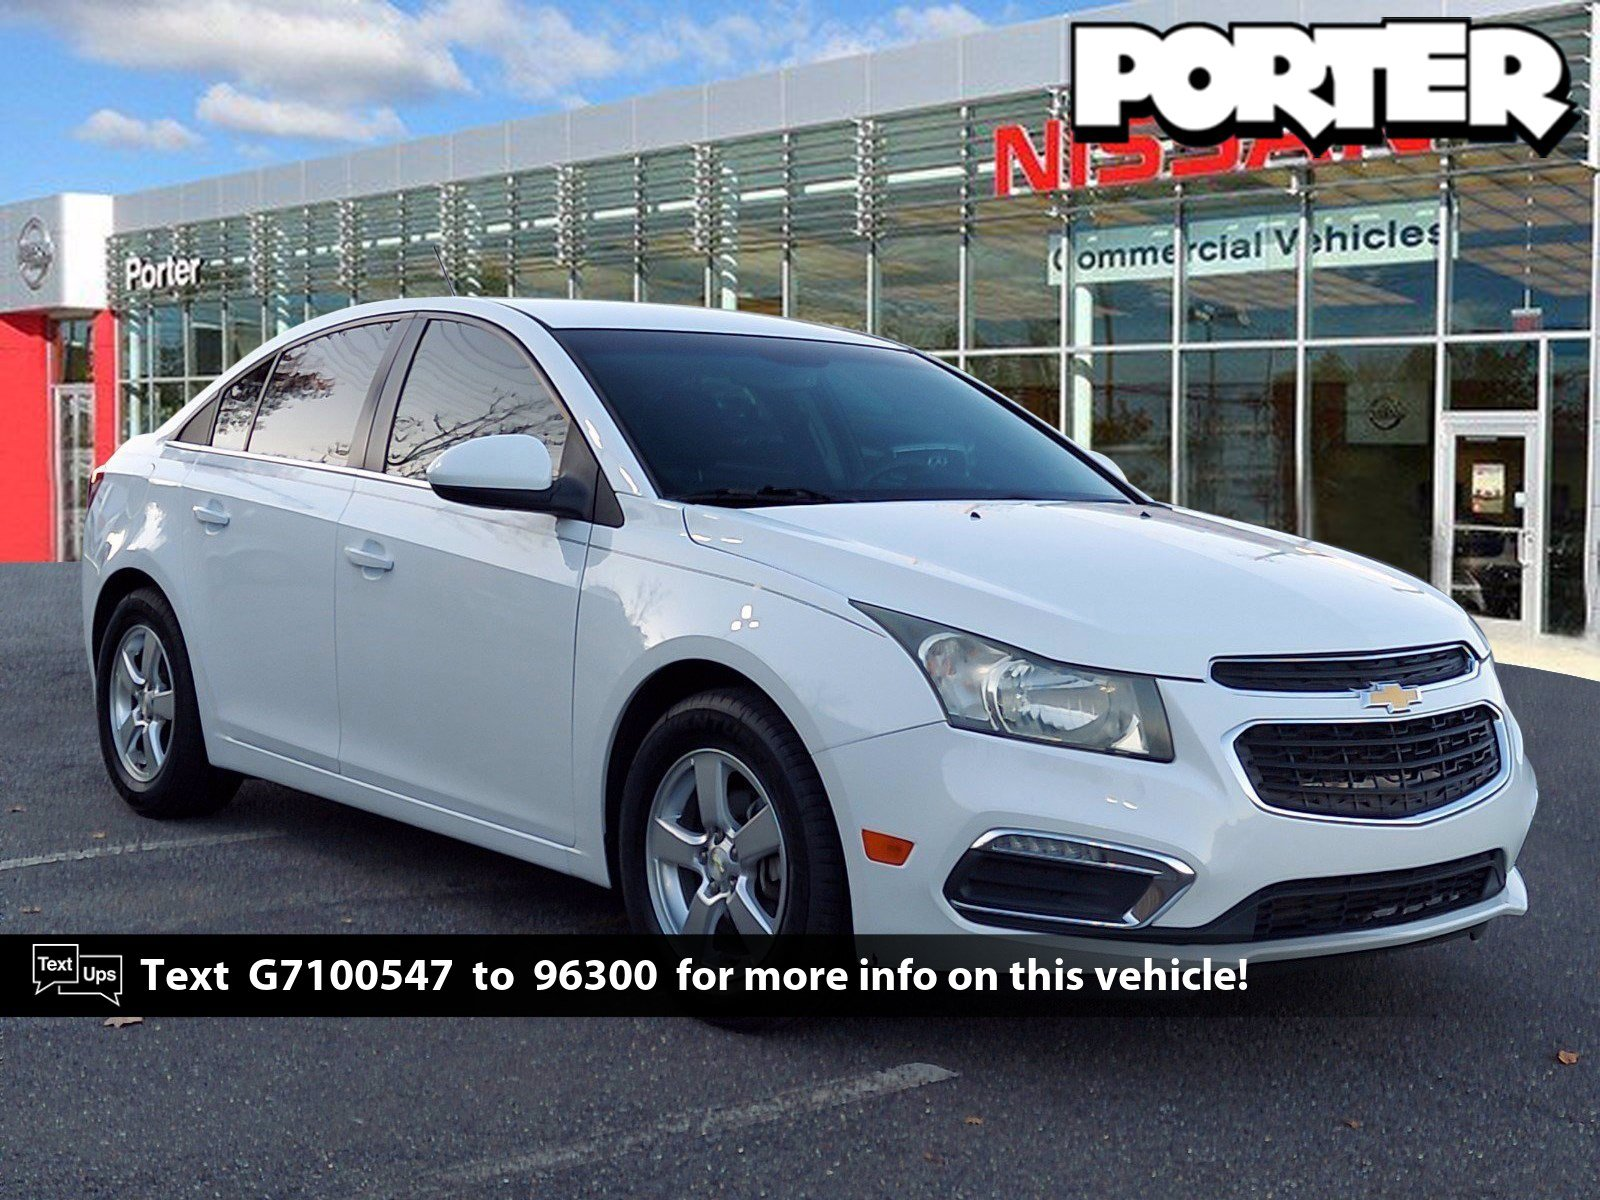 2016 Chevrolet Cruze Limited LT 4dr Sdn Auto LT w/1LT Turbocharged Gas I4 1.4L/83 [0]